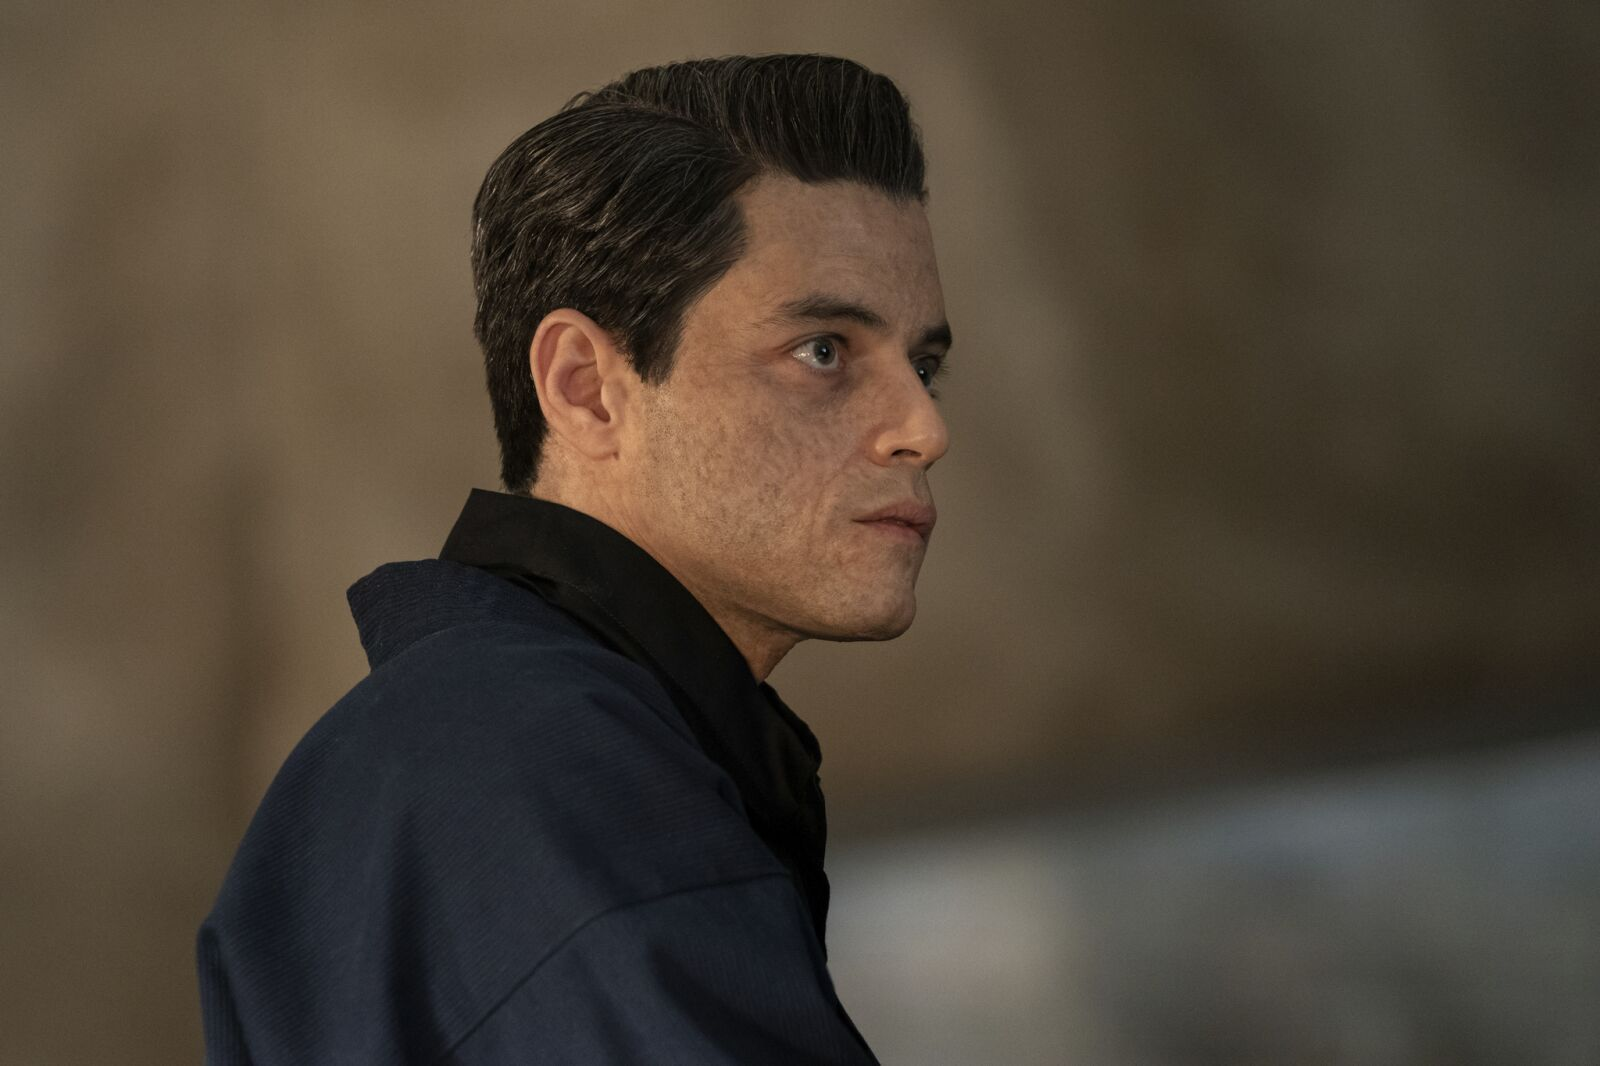 Why Rami Malek is the most exciting part of Bond 25